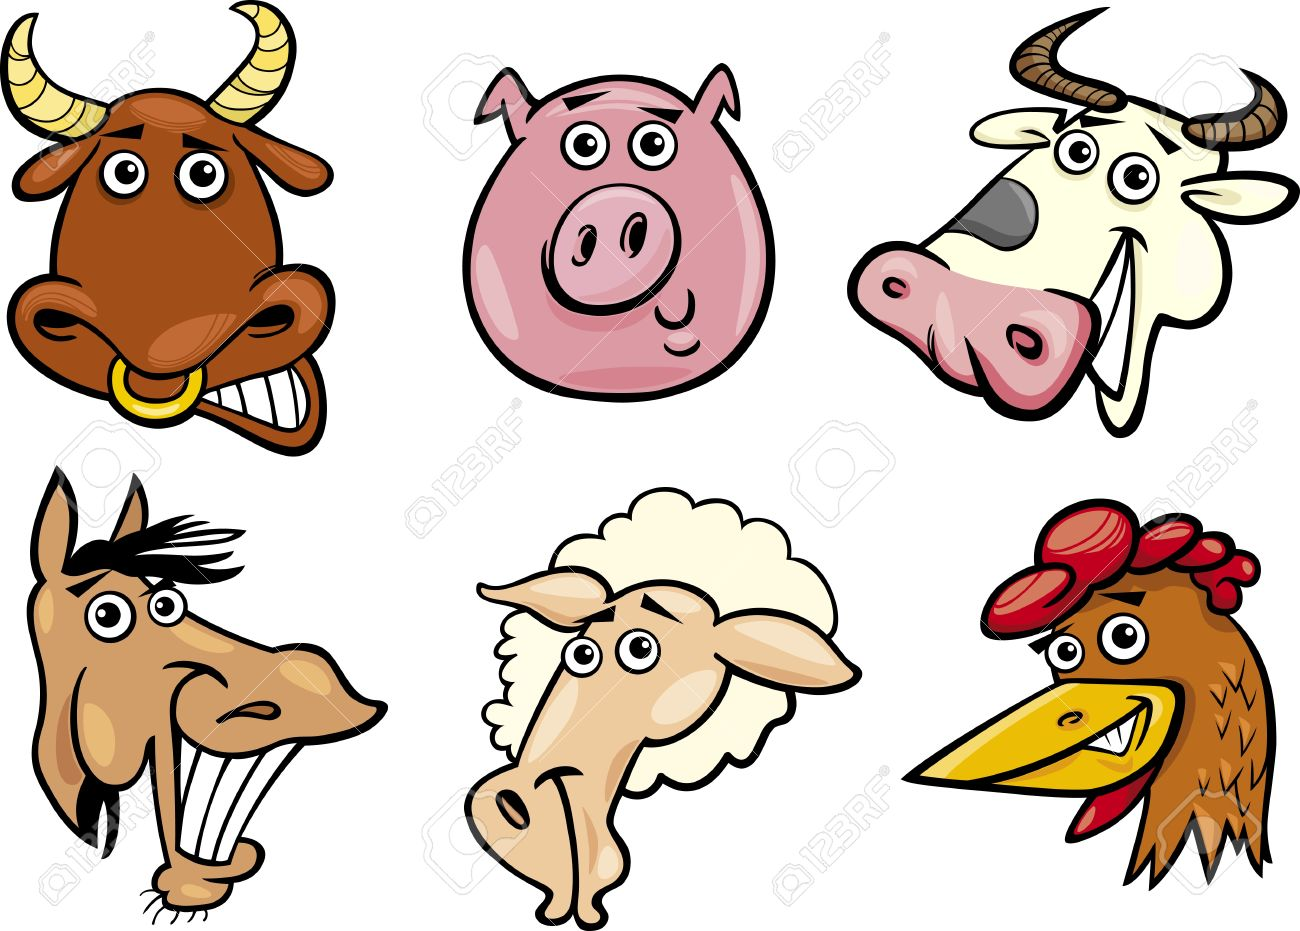 Moving clipart farm animal Heads cliparts Funny Farm Clipart